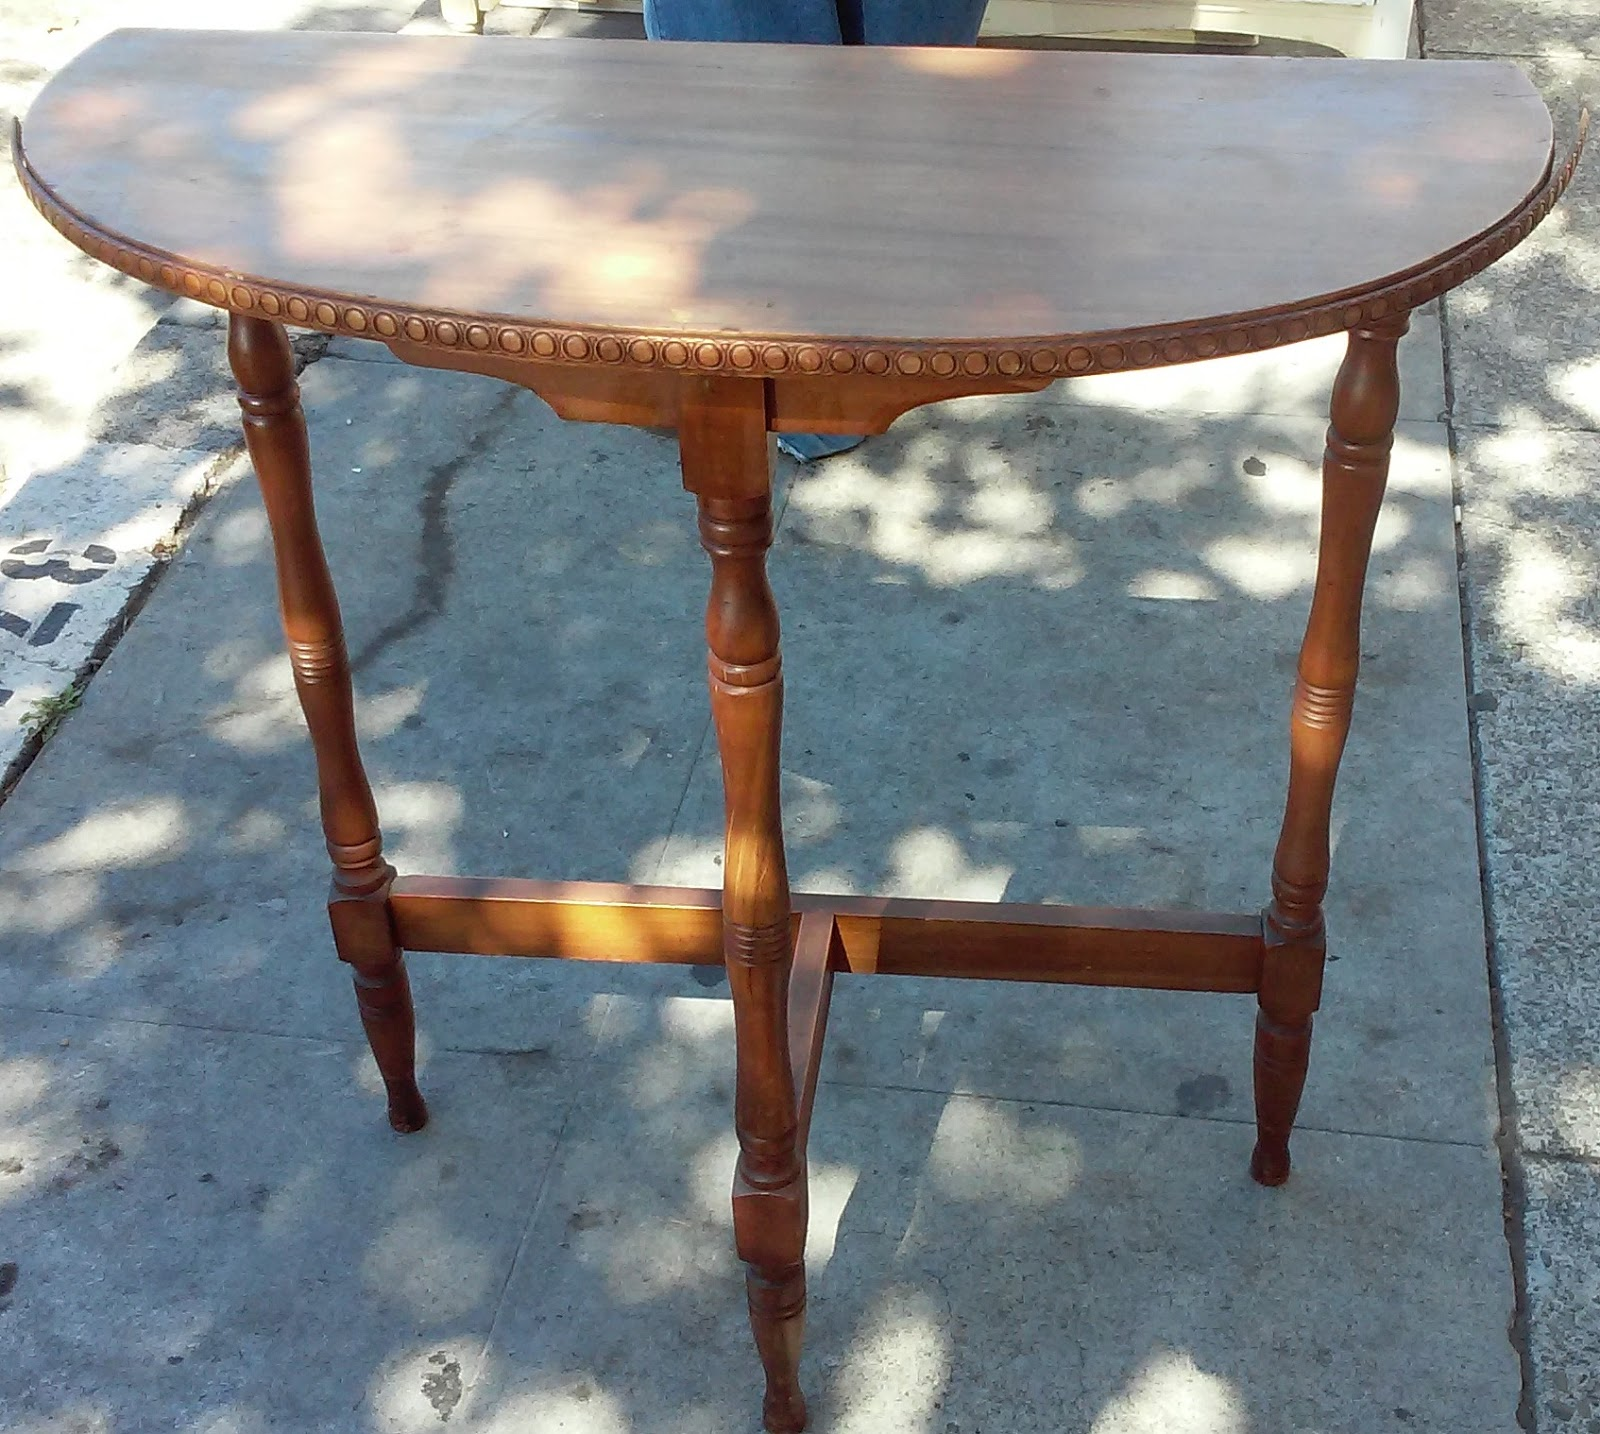 UHURU FURNITURE & COLLECTIBLES: SOLD Half Moon Side Table ...